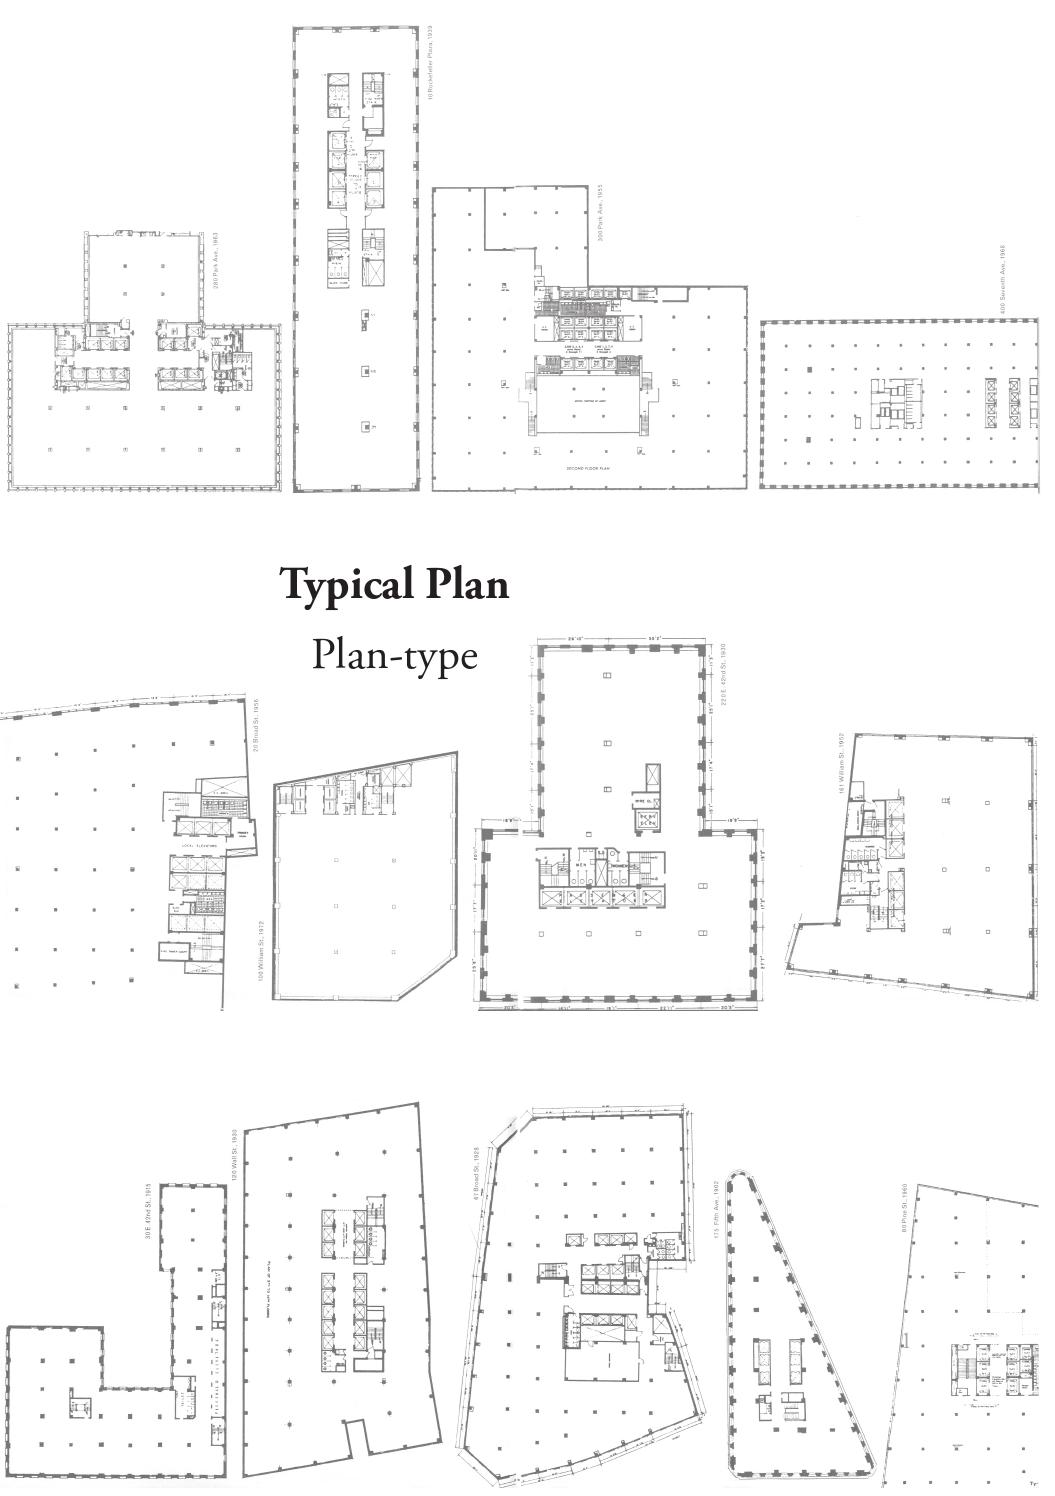 39 typical plan 39 by b r nice curt by curt b r nice issuu for Agence architecture suisse